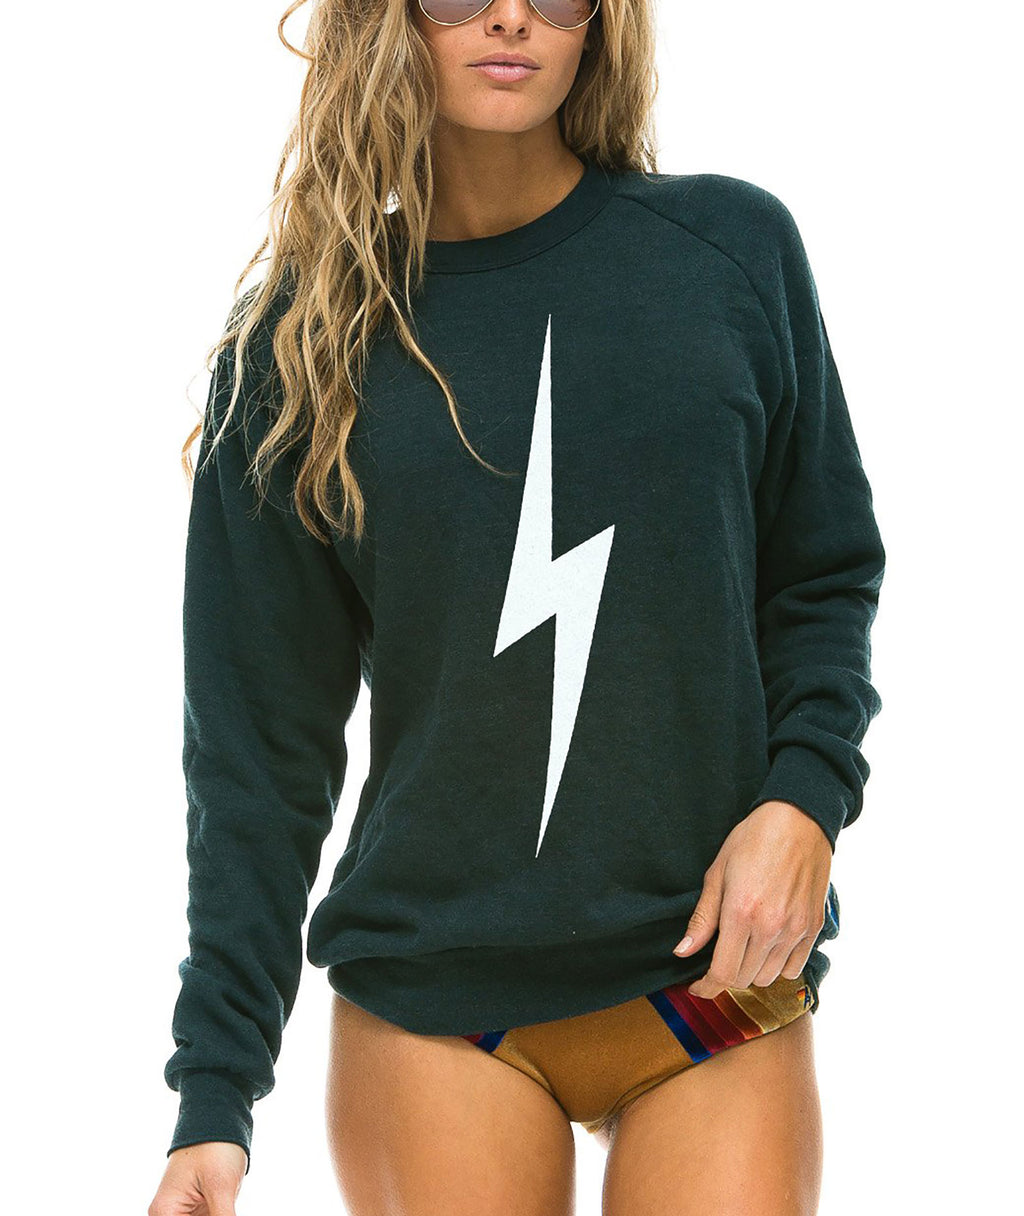 Aviator Nation Women Charcoal Bolt Crew Sweatshirt